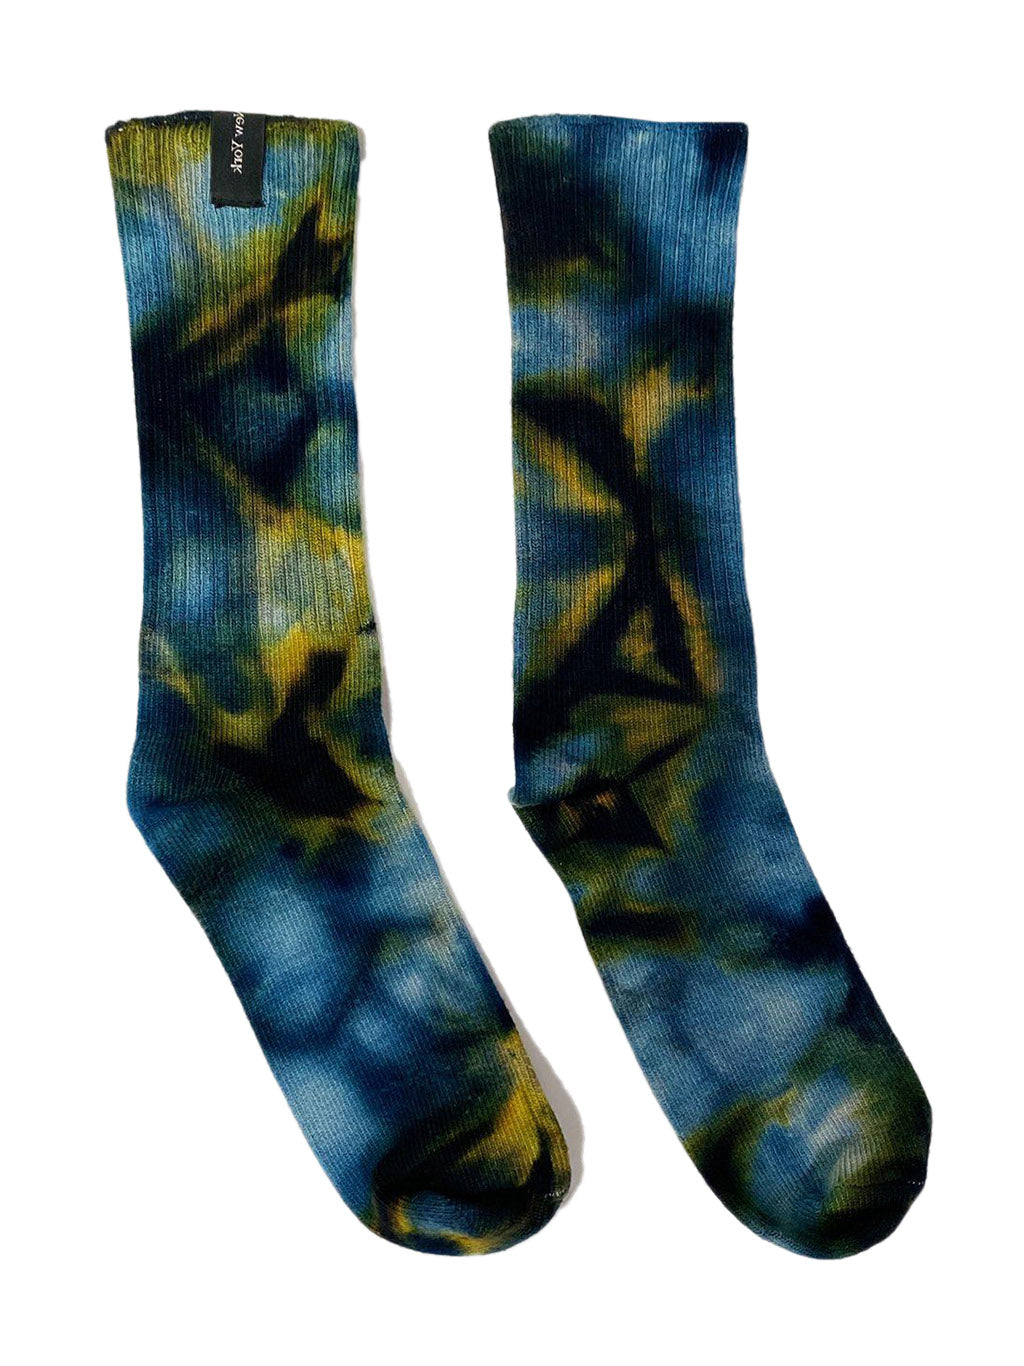 Blue Acid Tie Socks